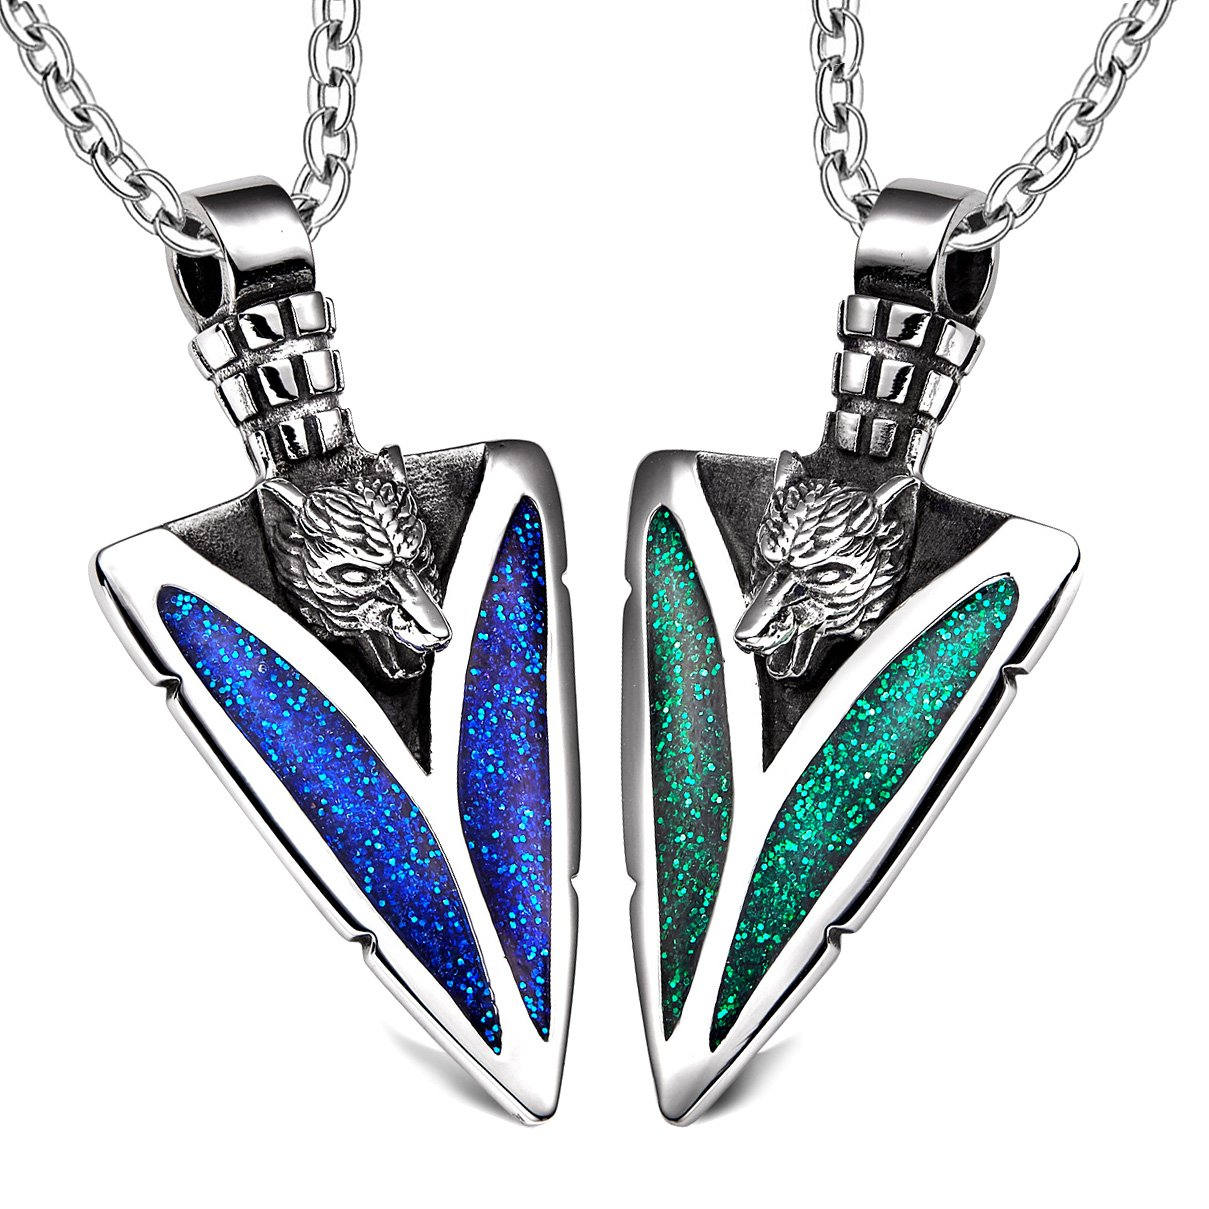 Arrowhead Howling Wolf Love Couples or BFF Set Protection Amulets Sparkling Royal Blue Green Necklaces